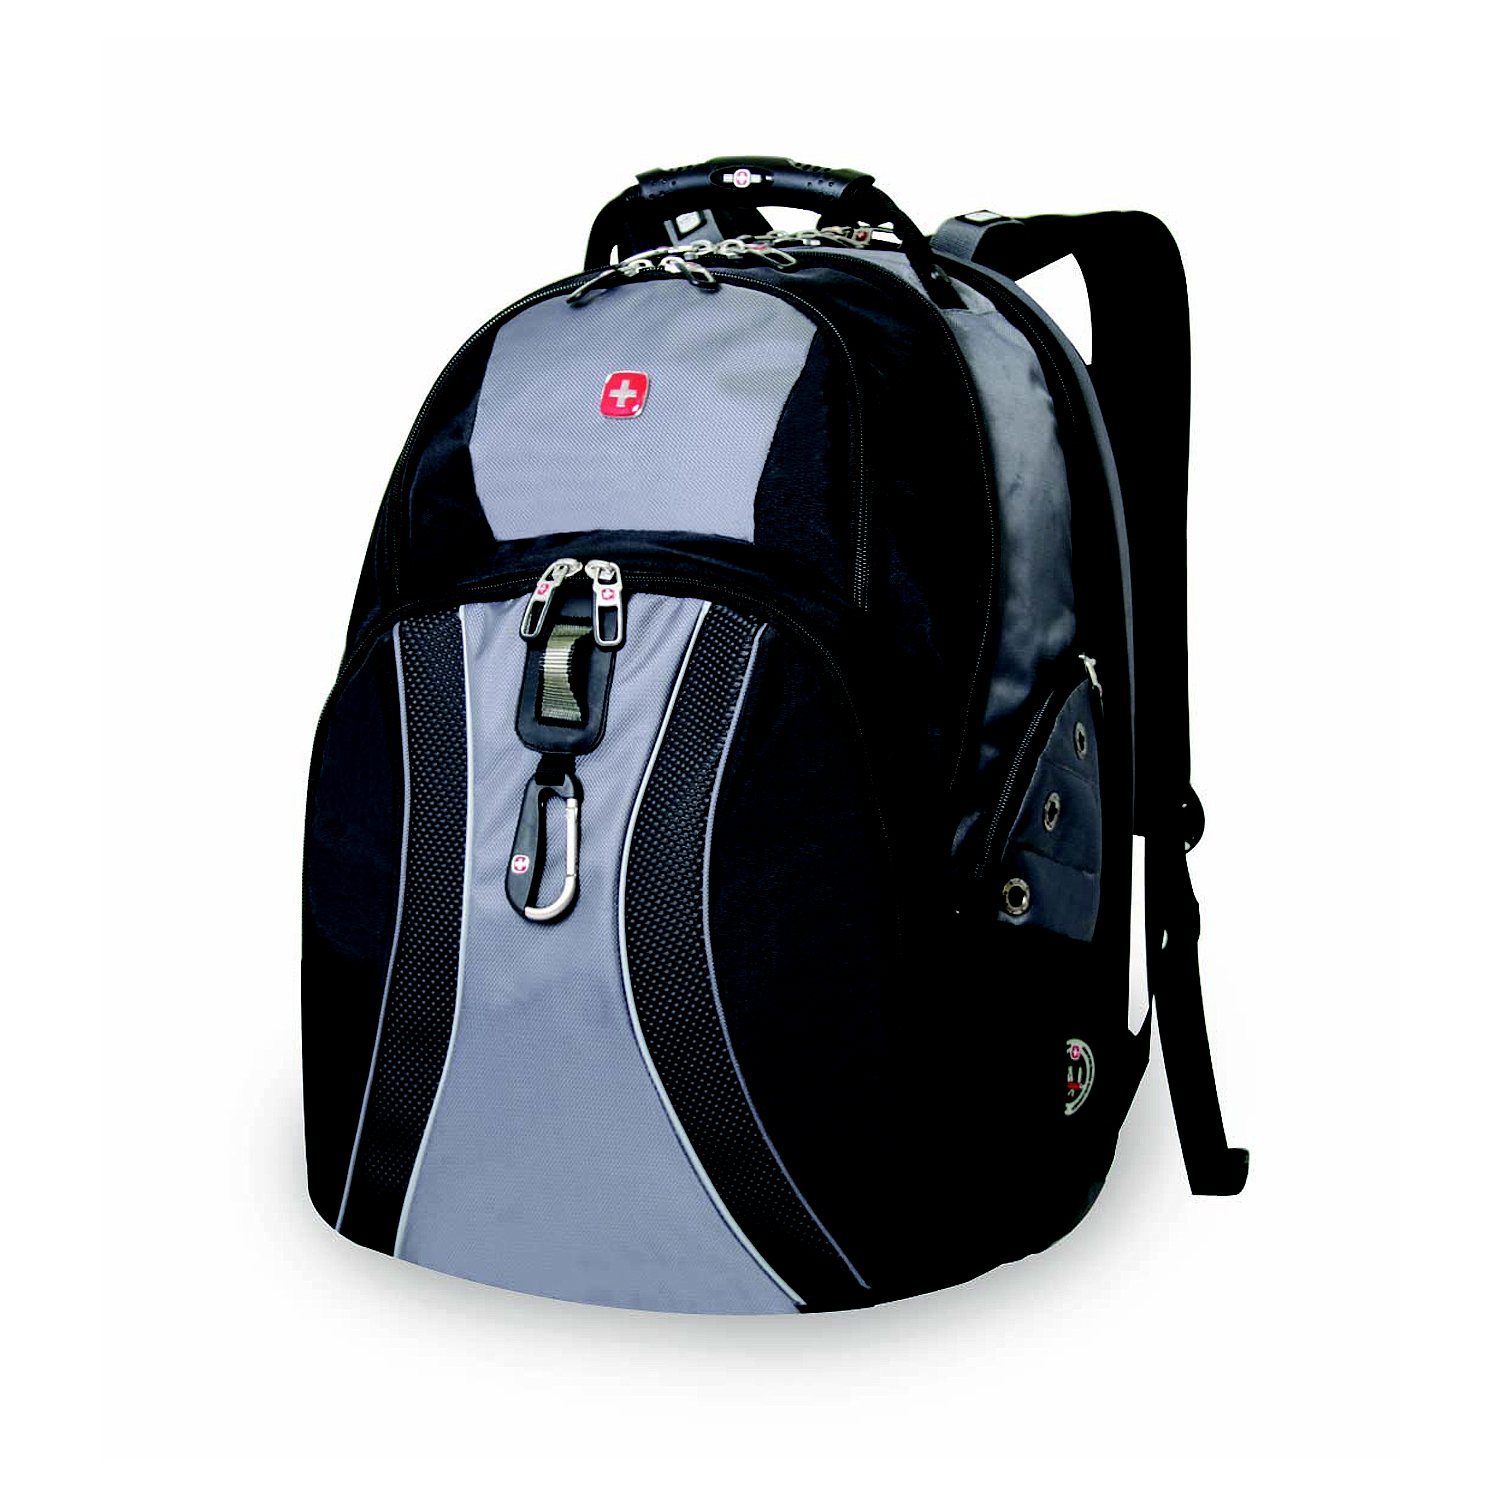 Swiss Gear Internal Frame Backpack - Crazy Backpacks